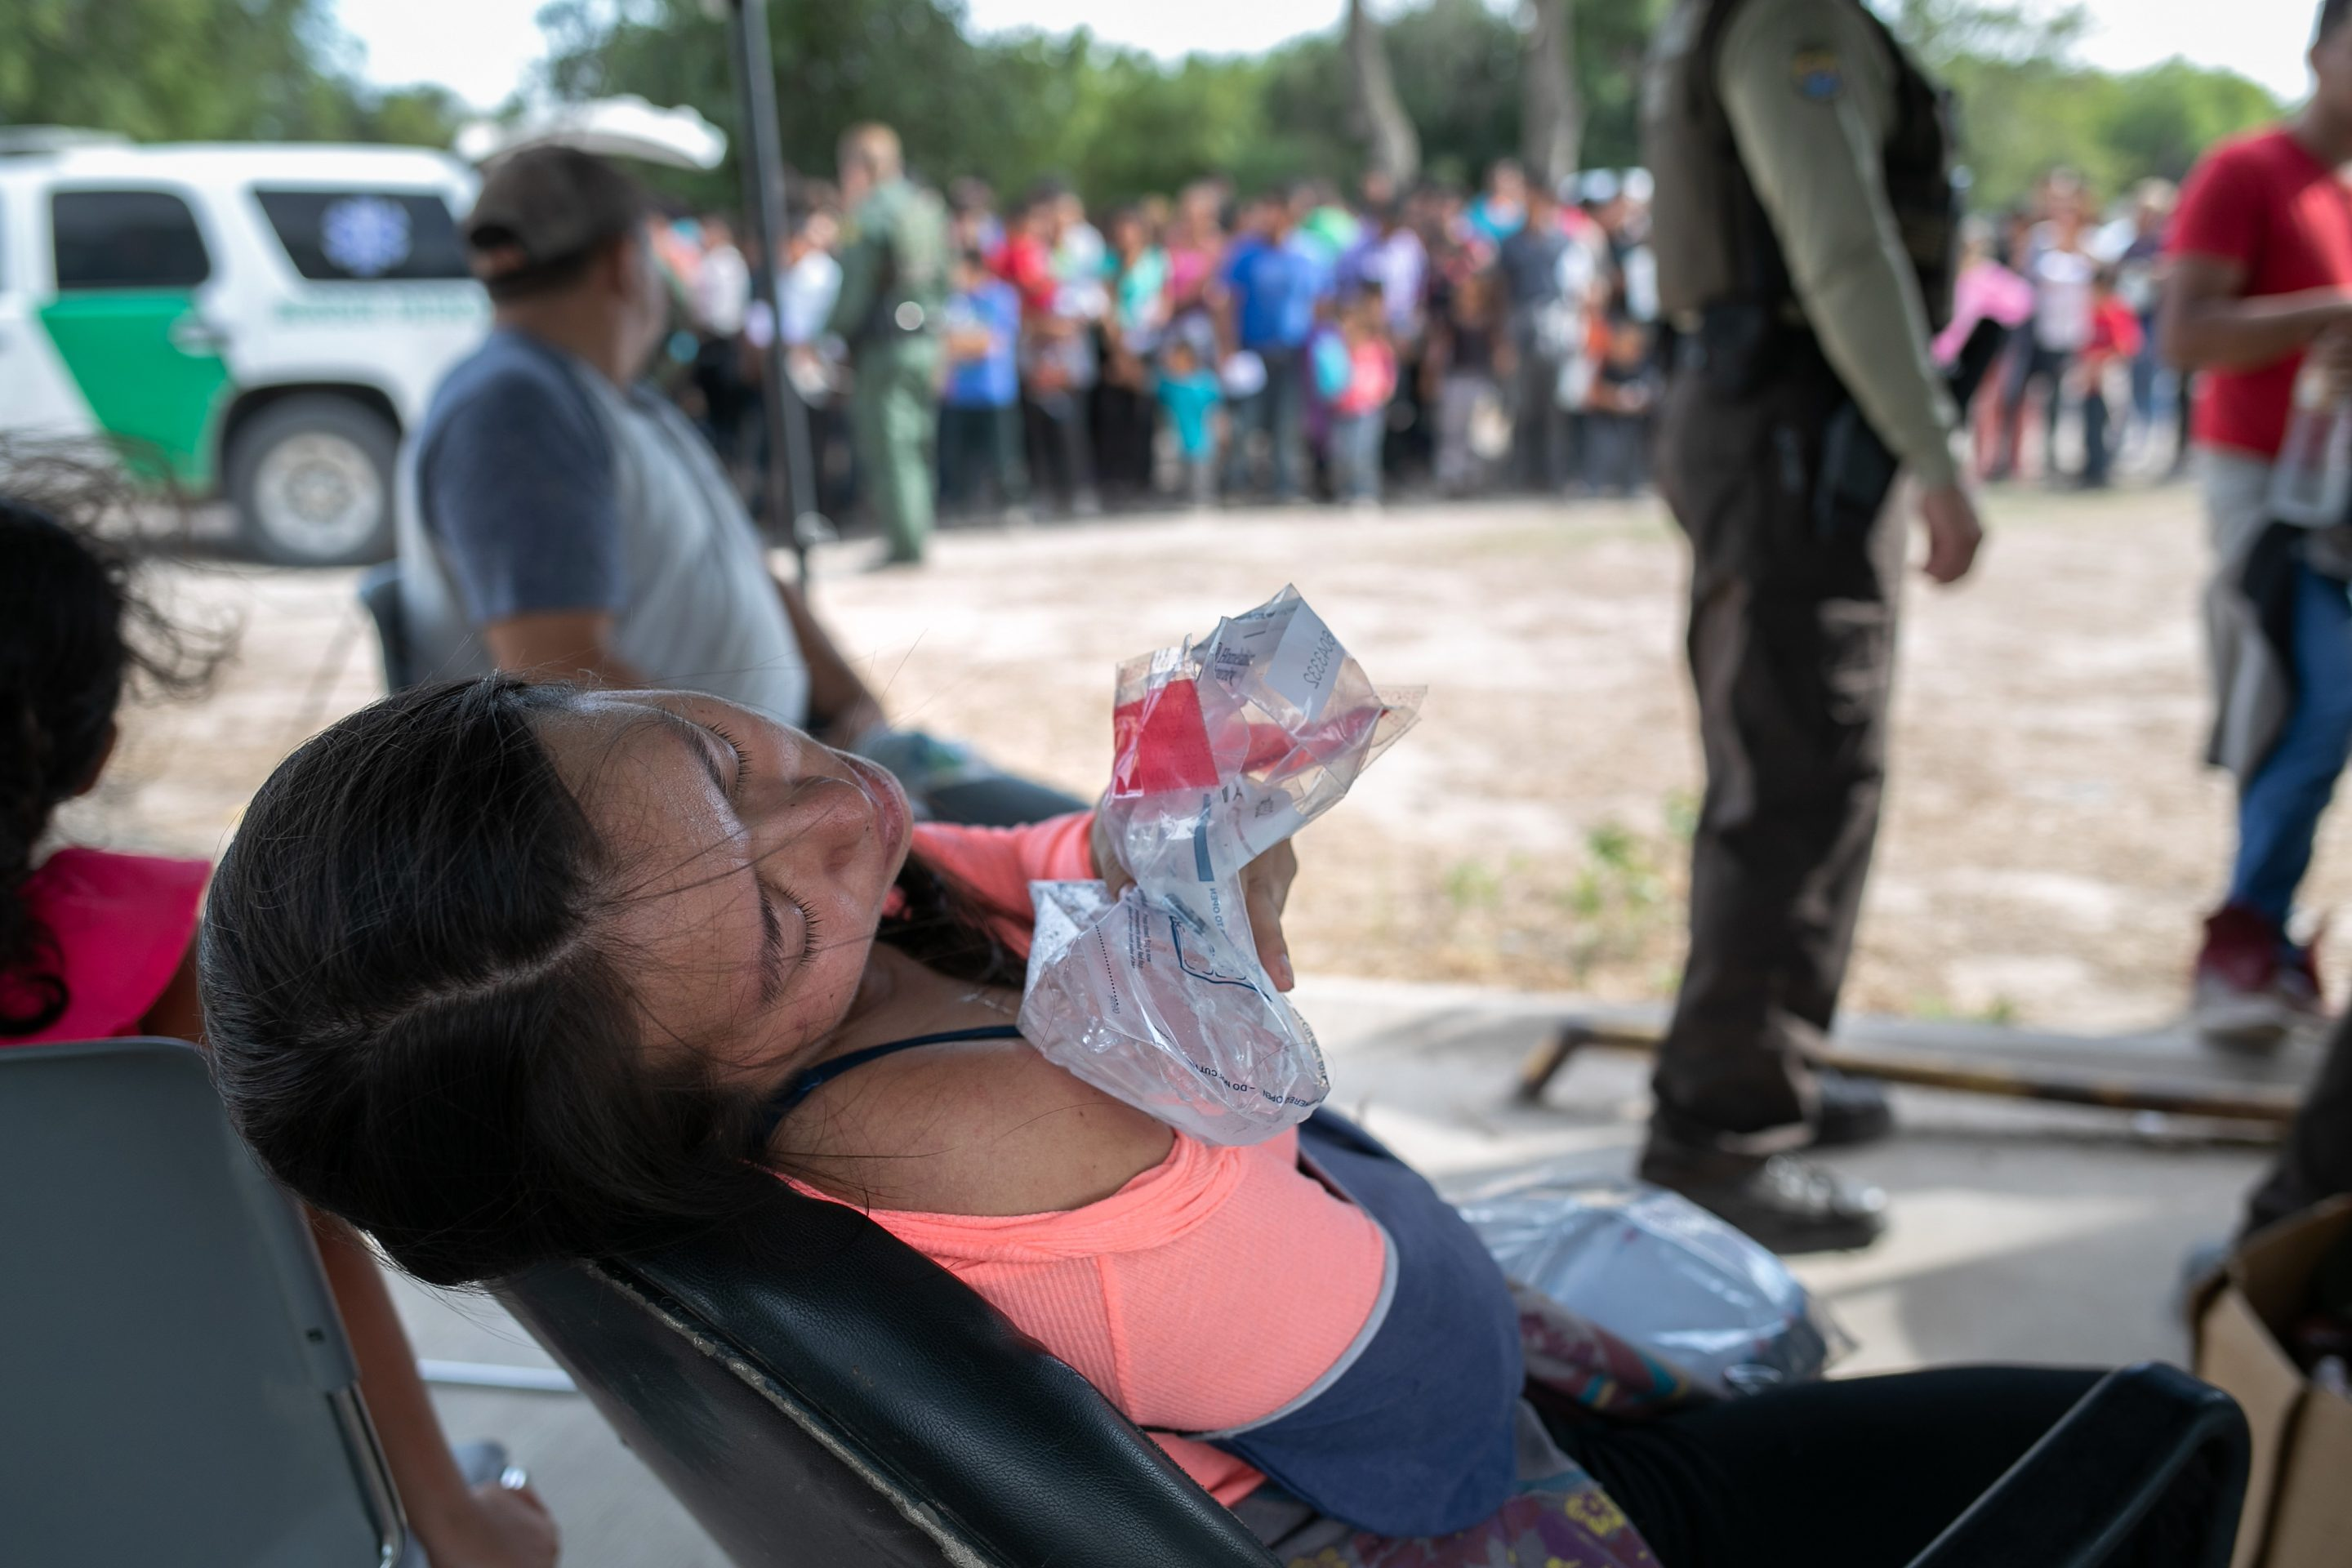 An immigrant from Guatemala ices her shoulder after she was taken into custody by U.S. border agents on July 02, 2019 in Los Ebanos, Texas.